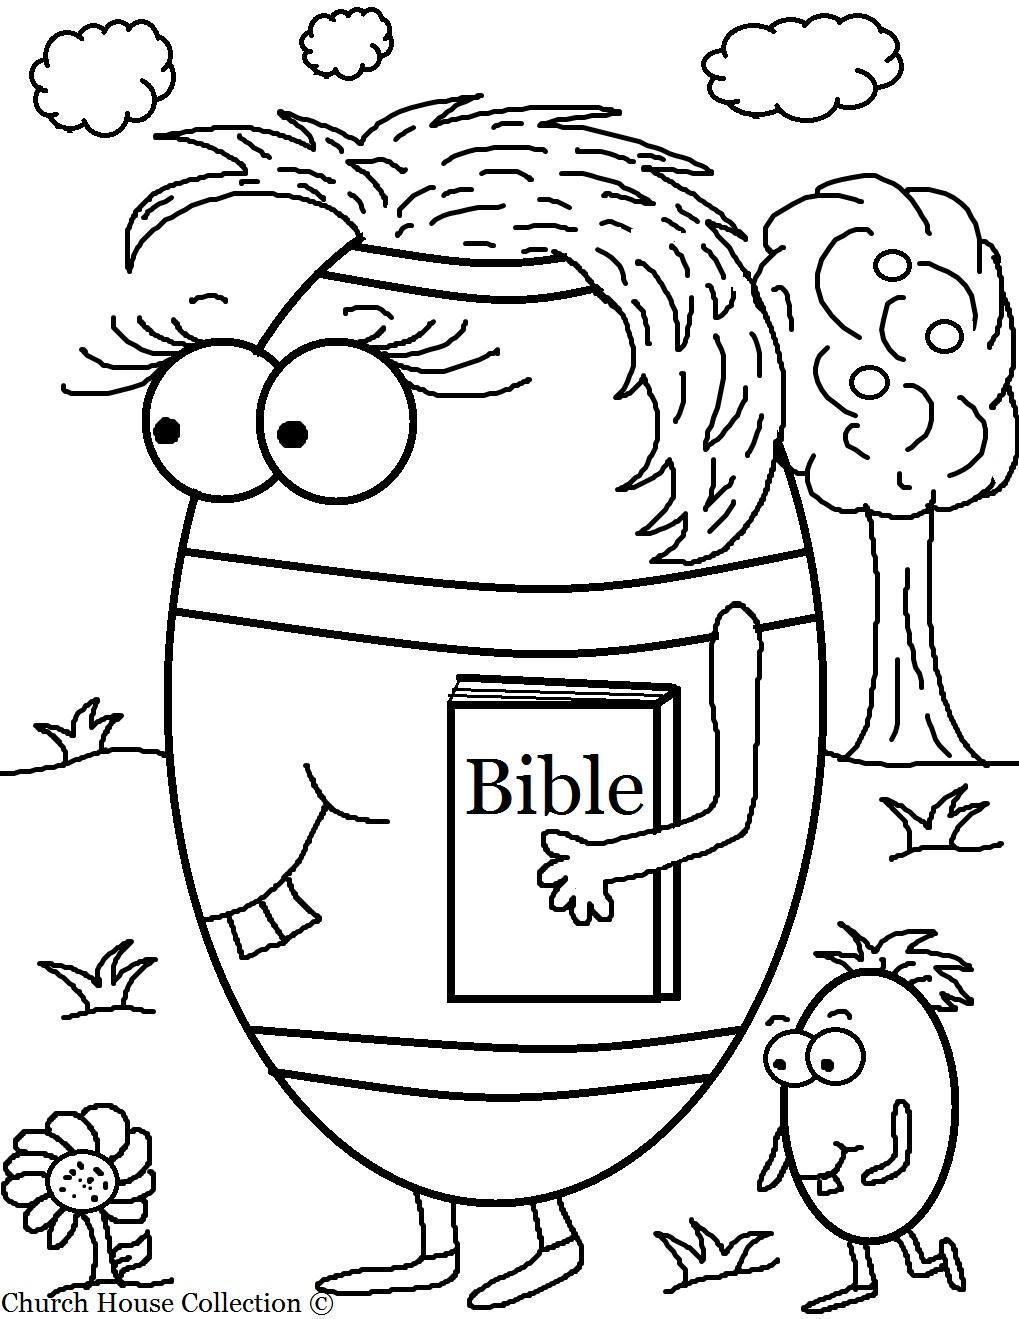 Simple colorings easter coloring pages for childrens church coloring pages for childrens church